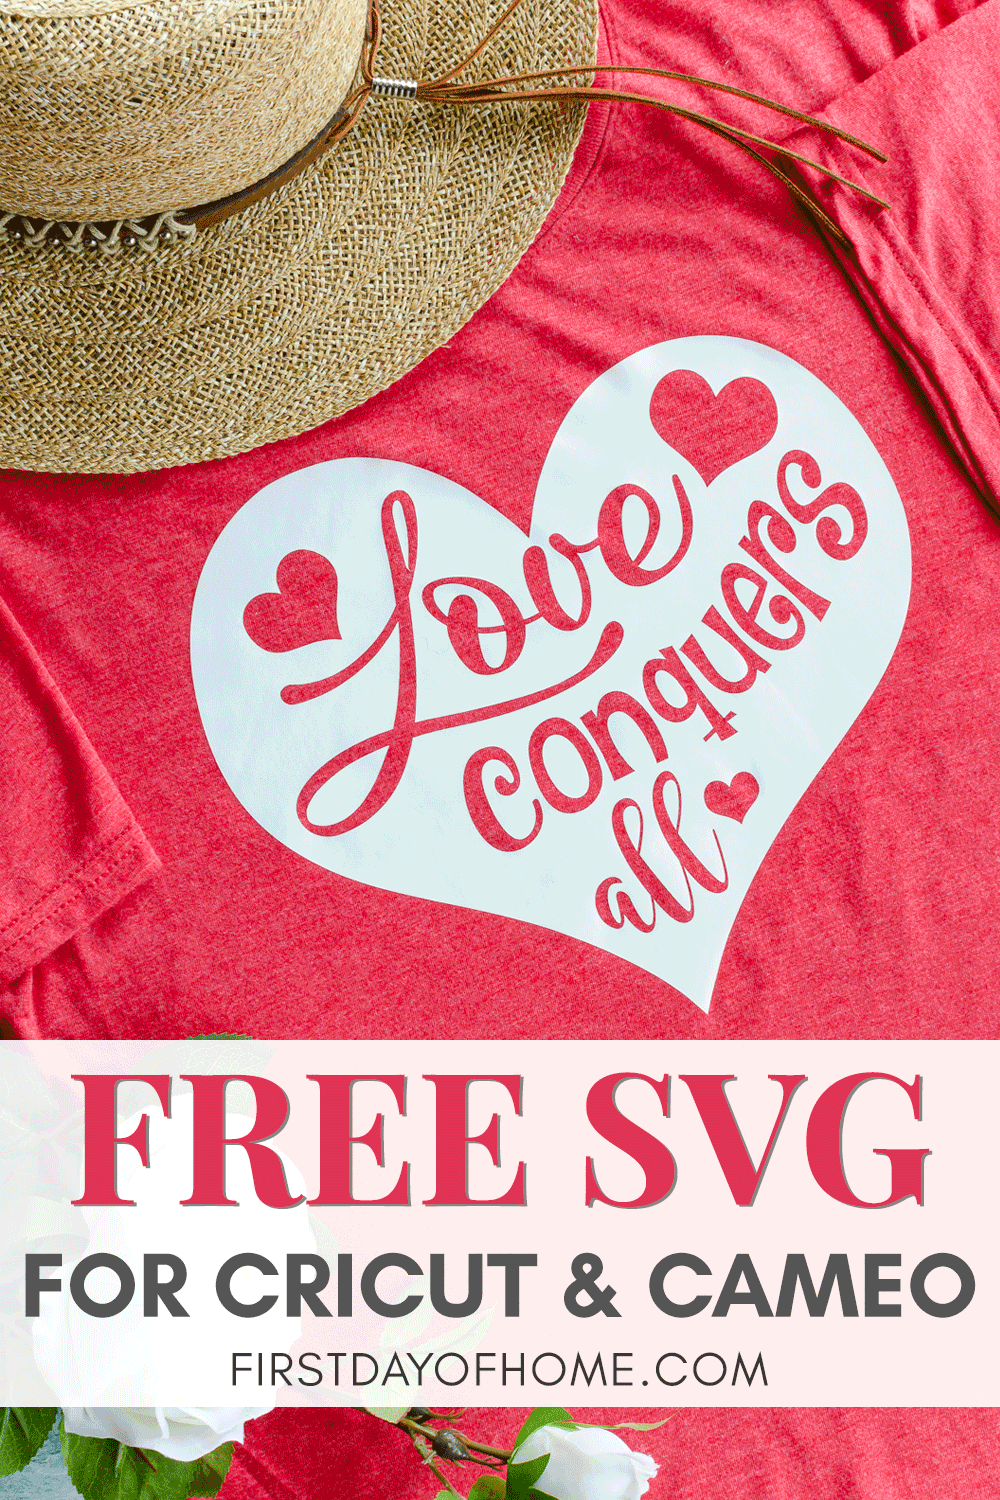 Free Love Conquers All design in SVG and JPEG format